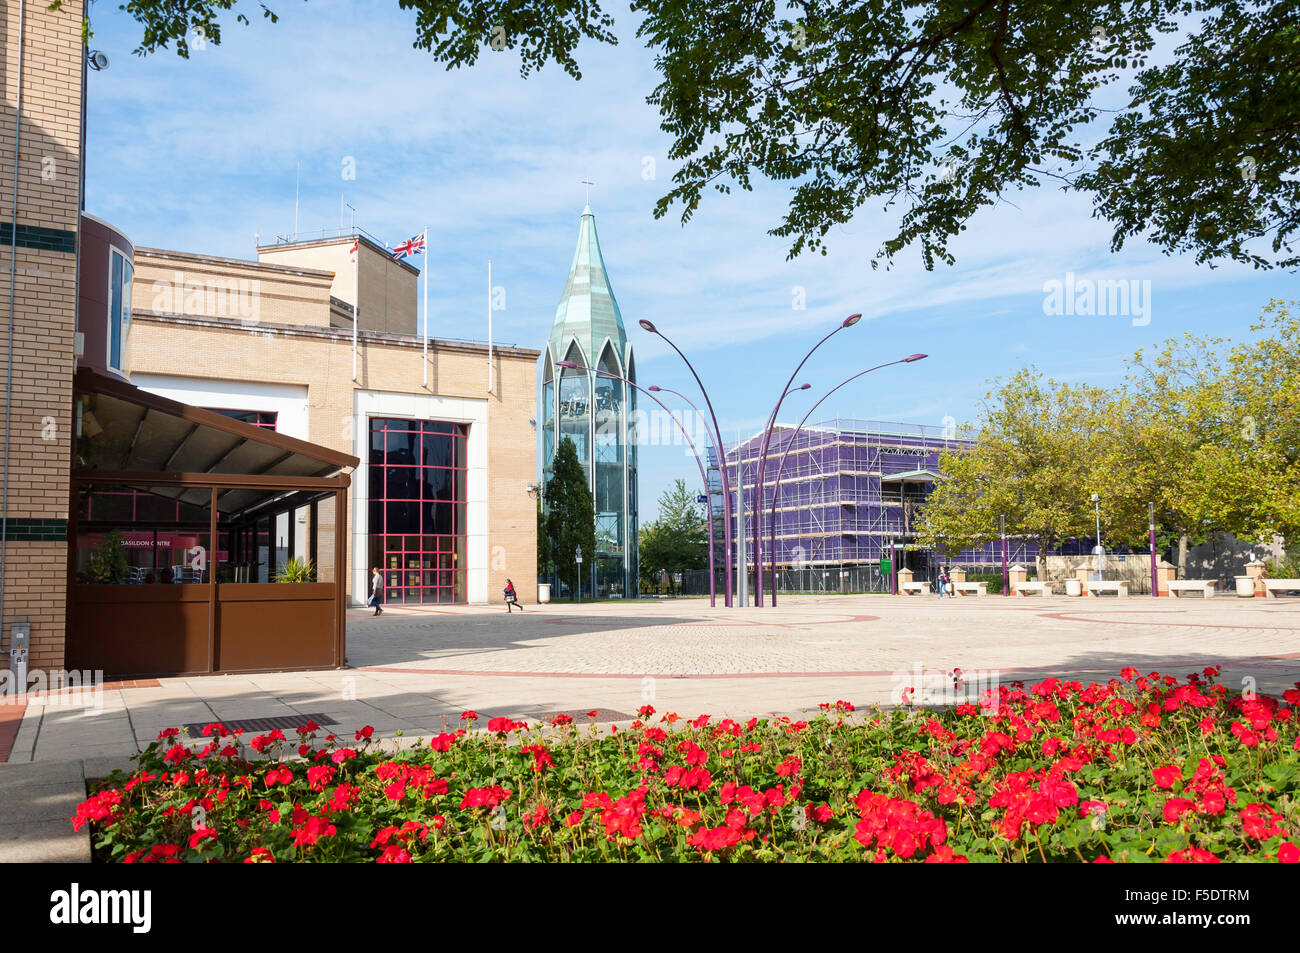 St.Martin's Square showing Bell Tower, Basildon, Essex, England, United Kingdom - Stock Image